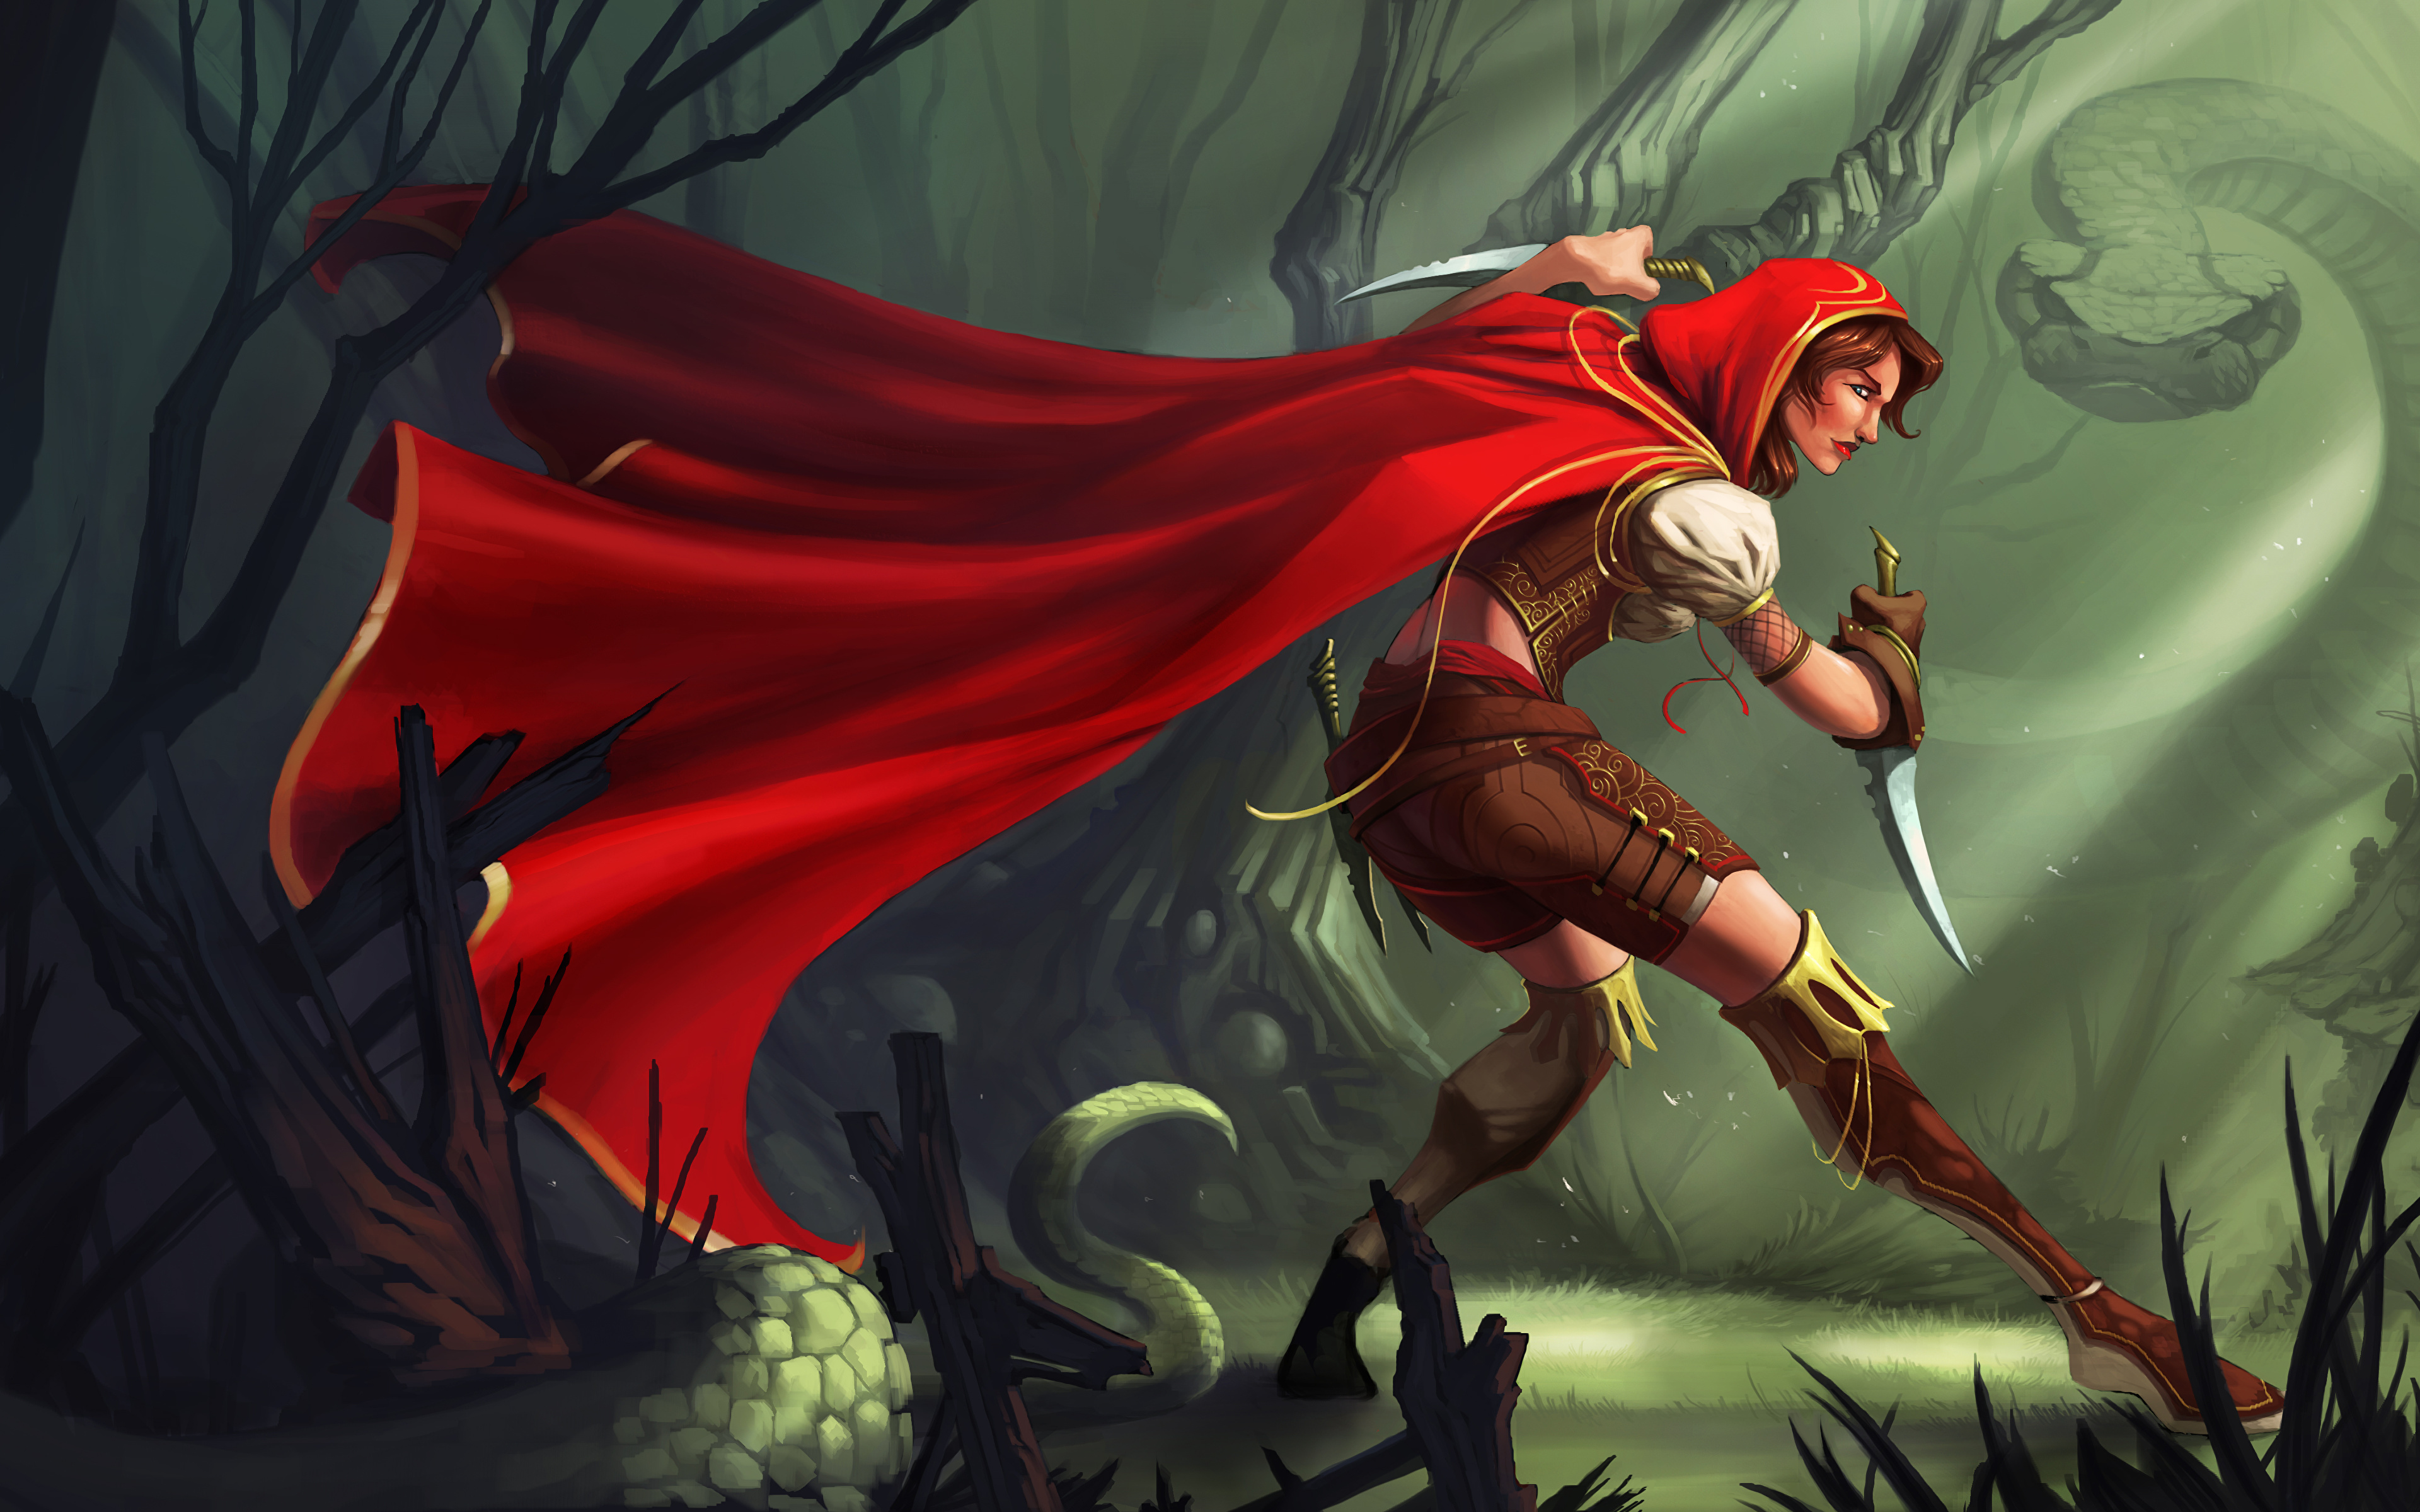 Picture Warrior Knife Fantasy Young Woman Cape Hood 3840x2400